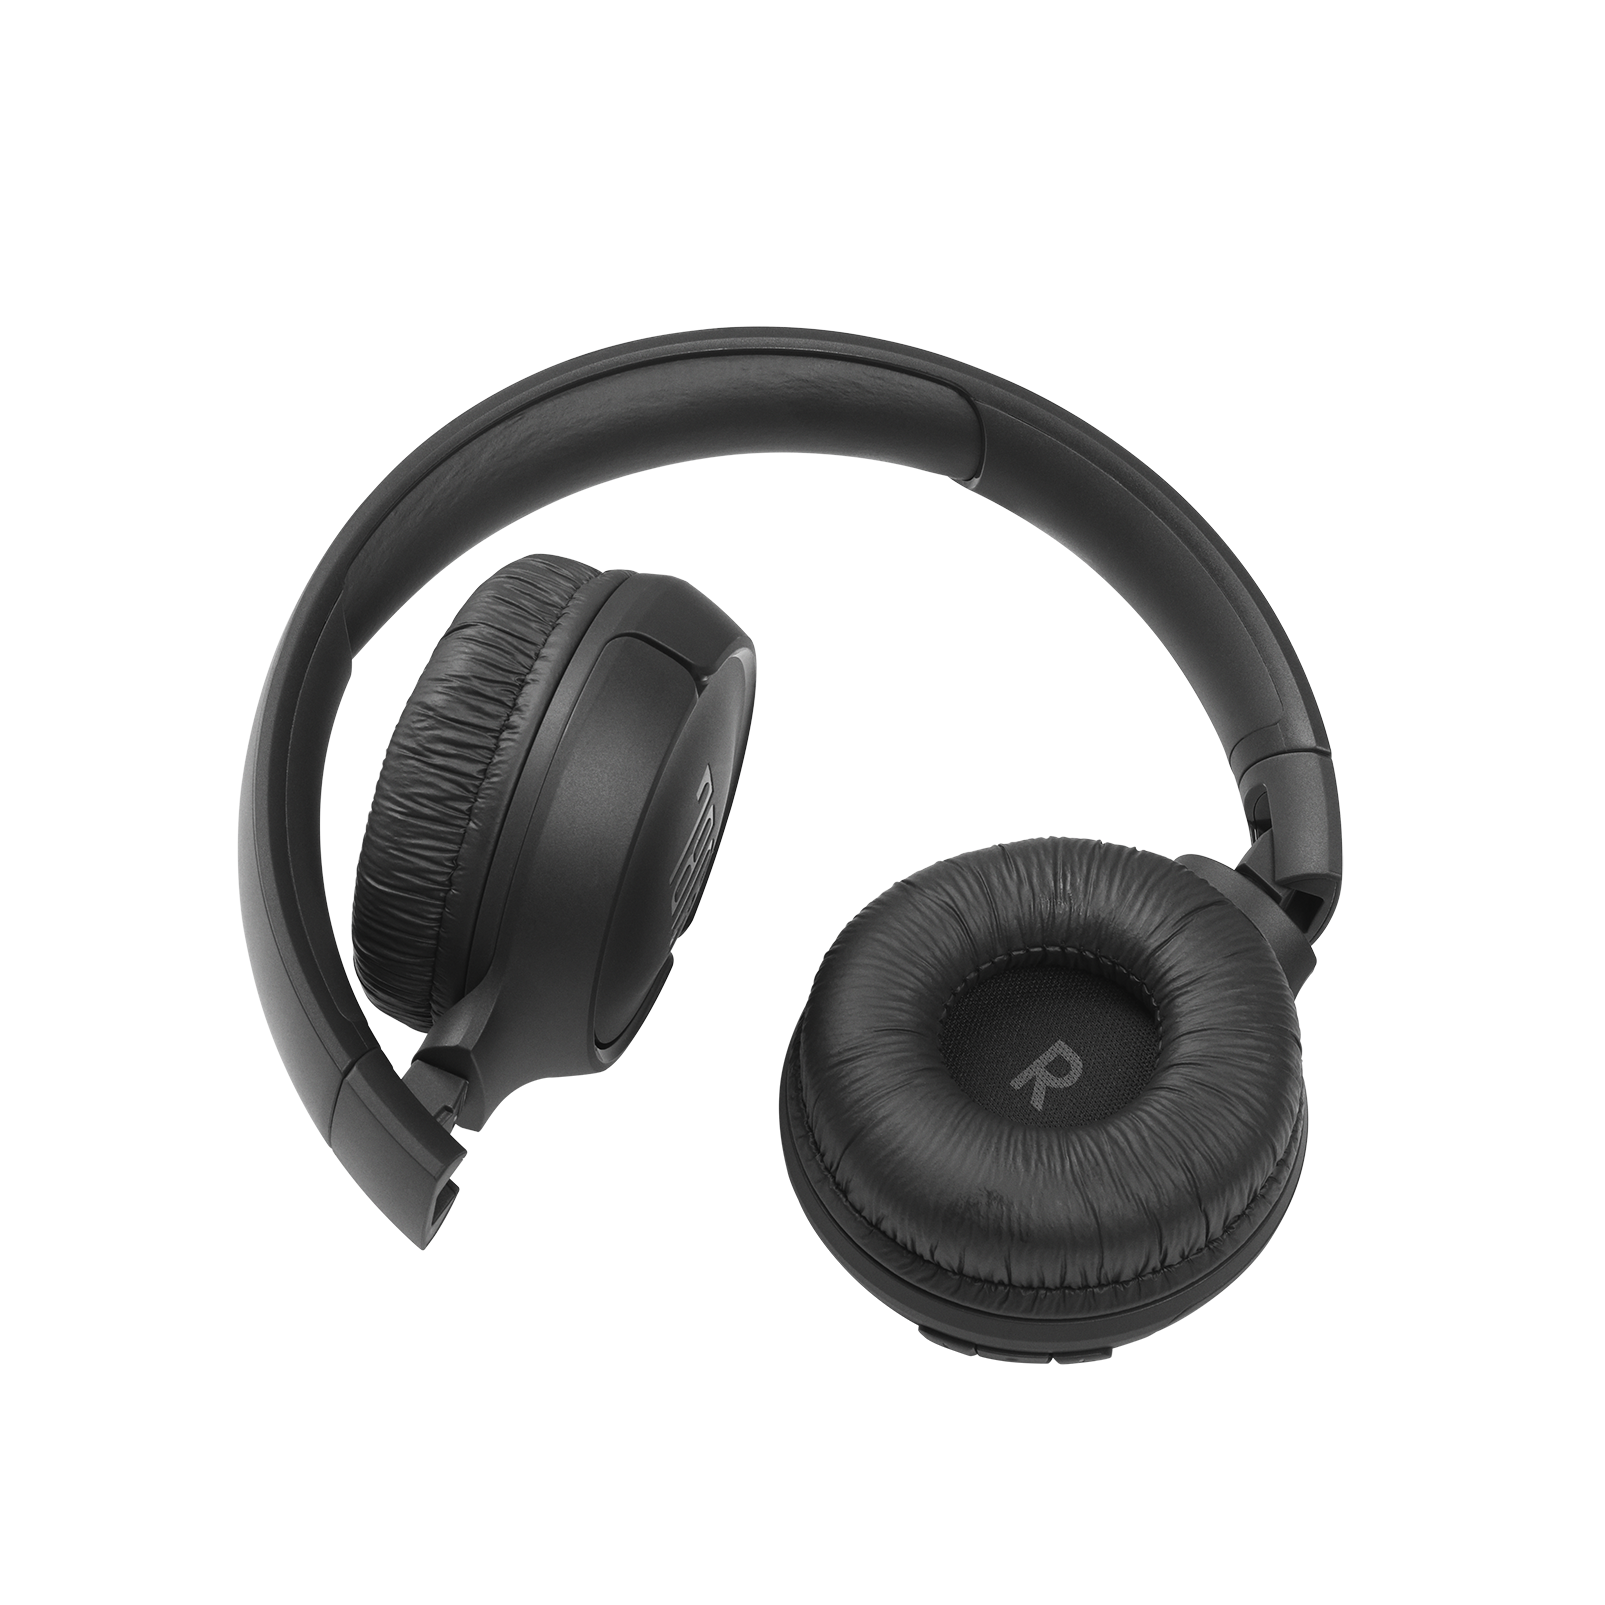 JBL Tune 510BT - Black - Wireless on-ear headphones - Detailshot 1